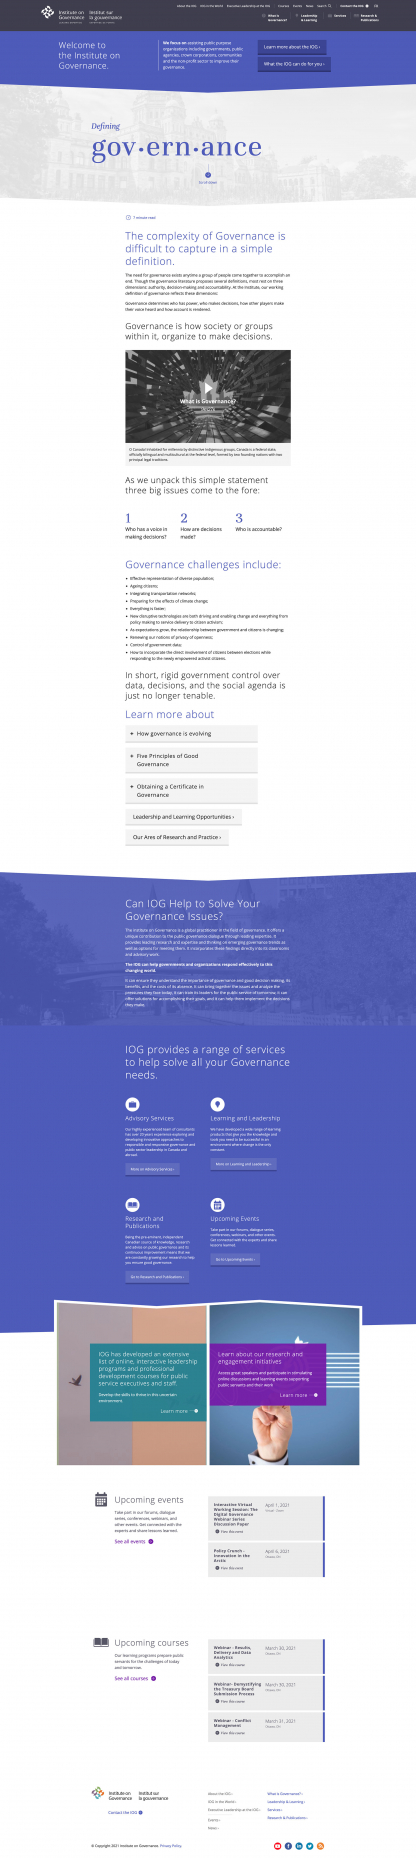 Screenshot of IOG What is Governance? page